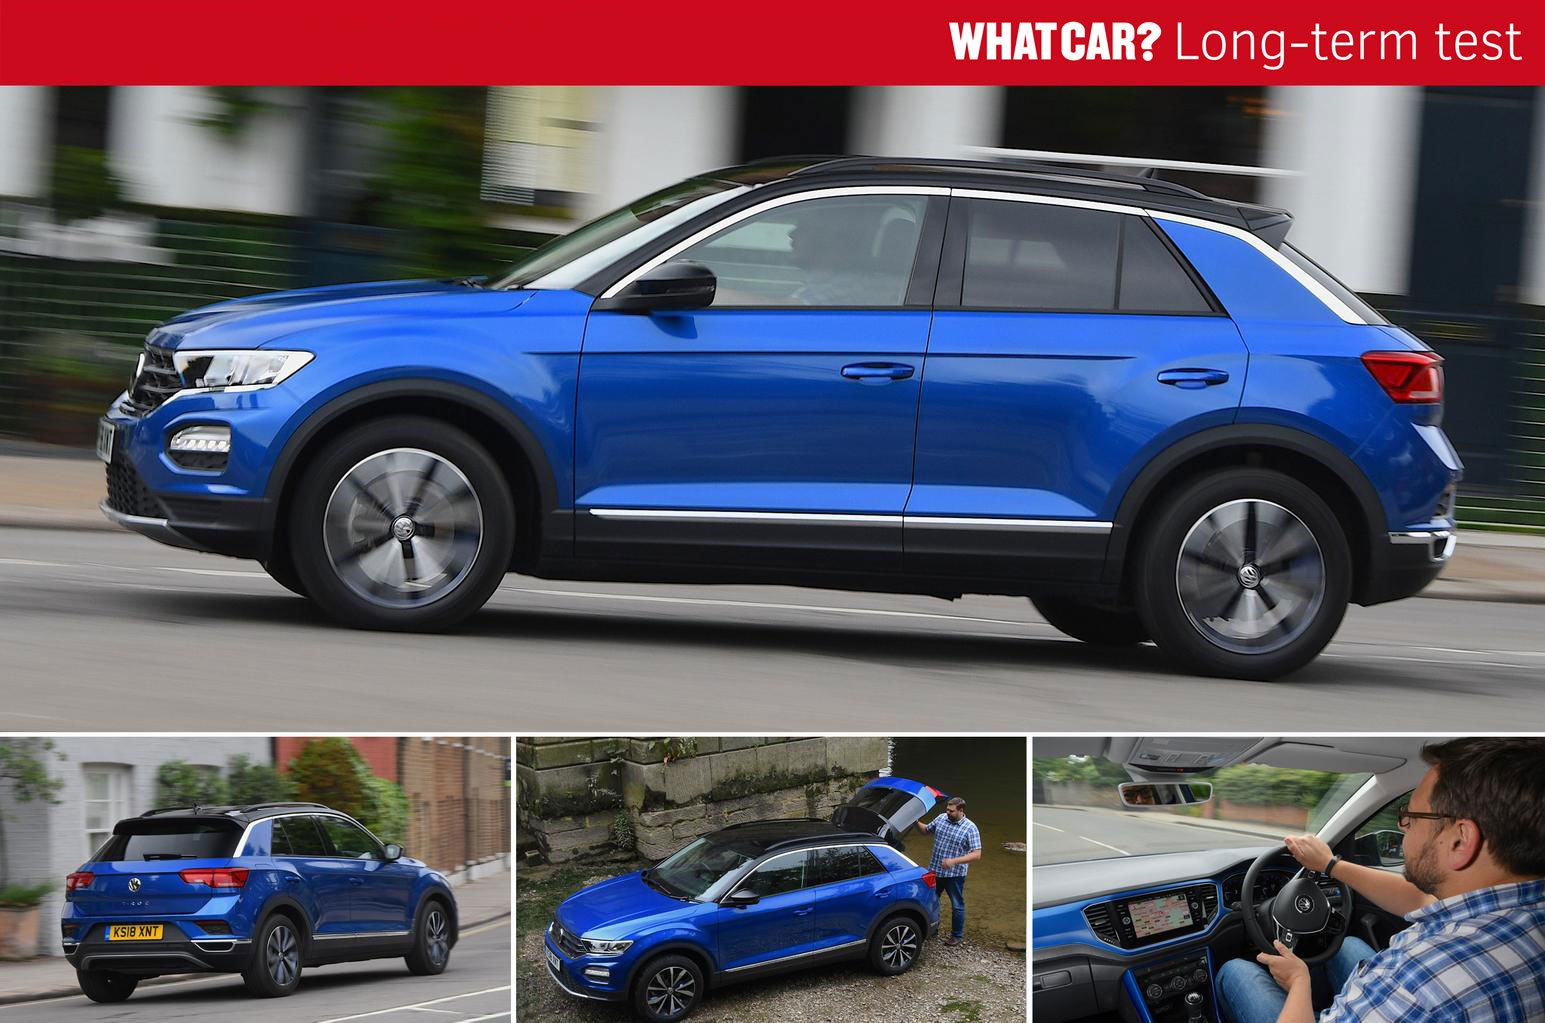 Volkswagen T-Roc long-term test